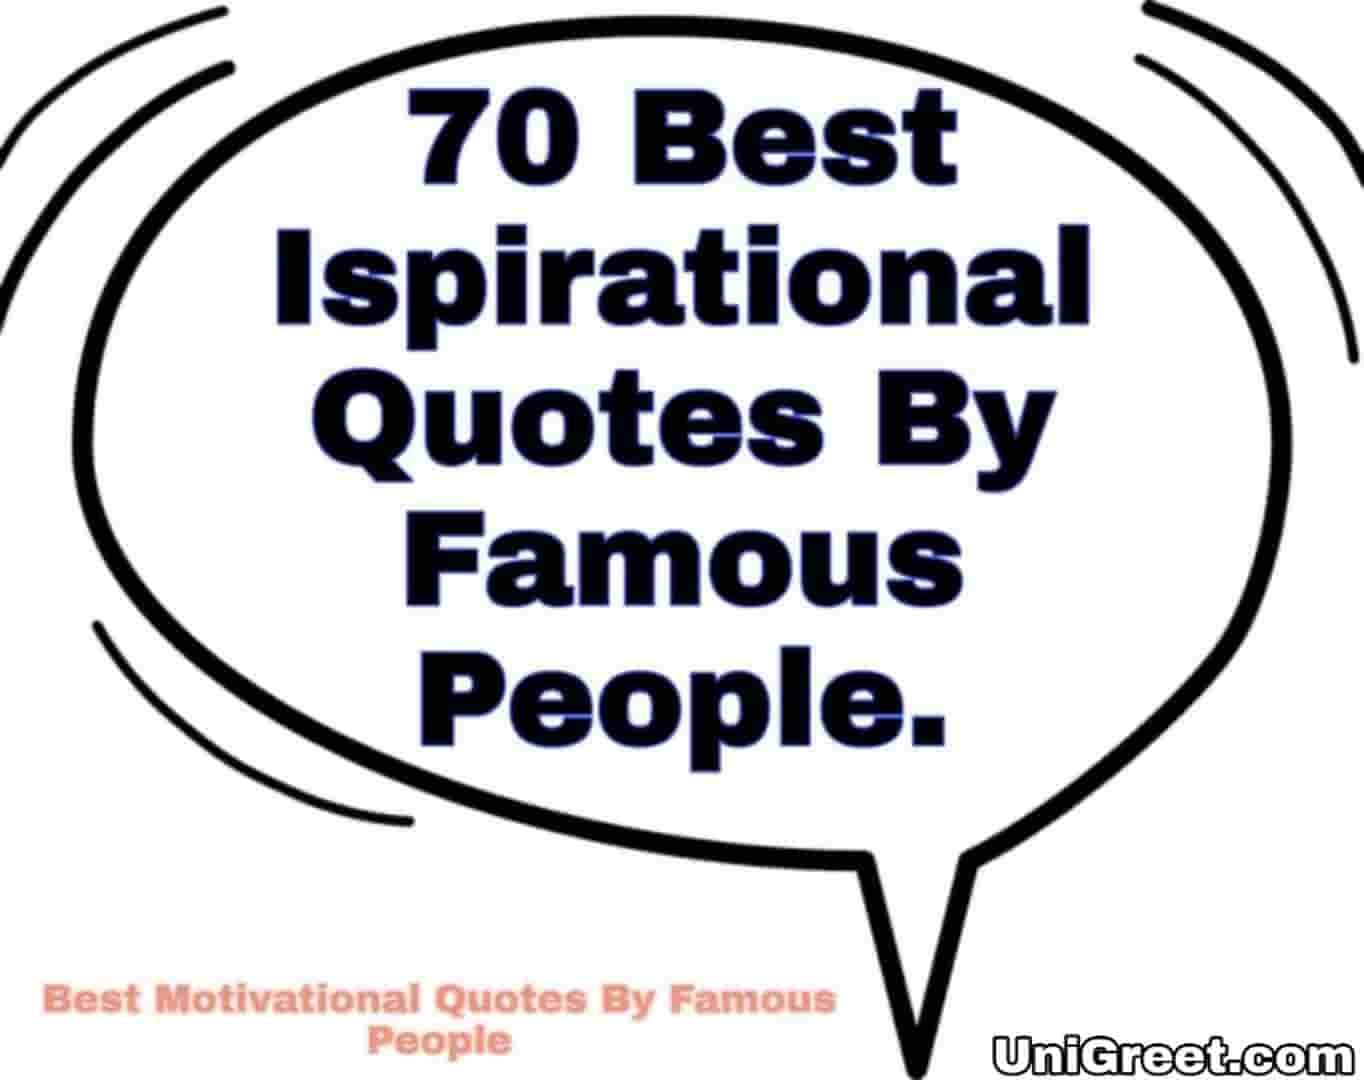 Top 70 Inspirational Quotes By Famous People-Famous Motivational Quotes ( With Images )